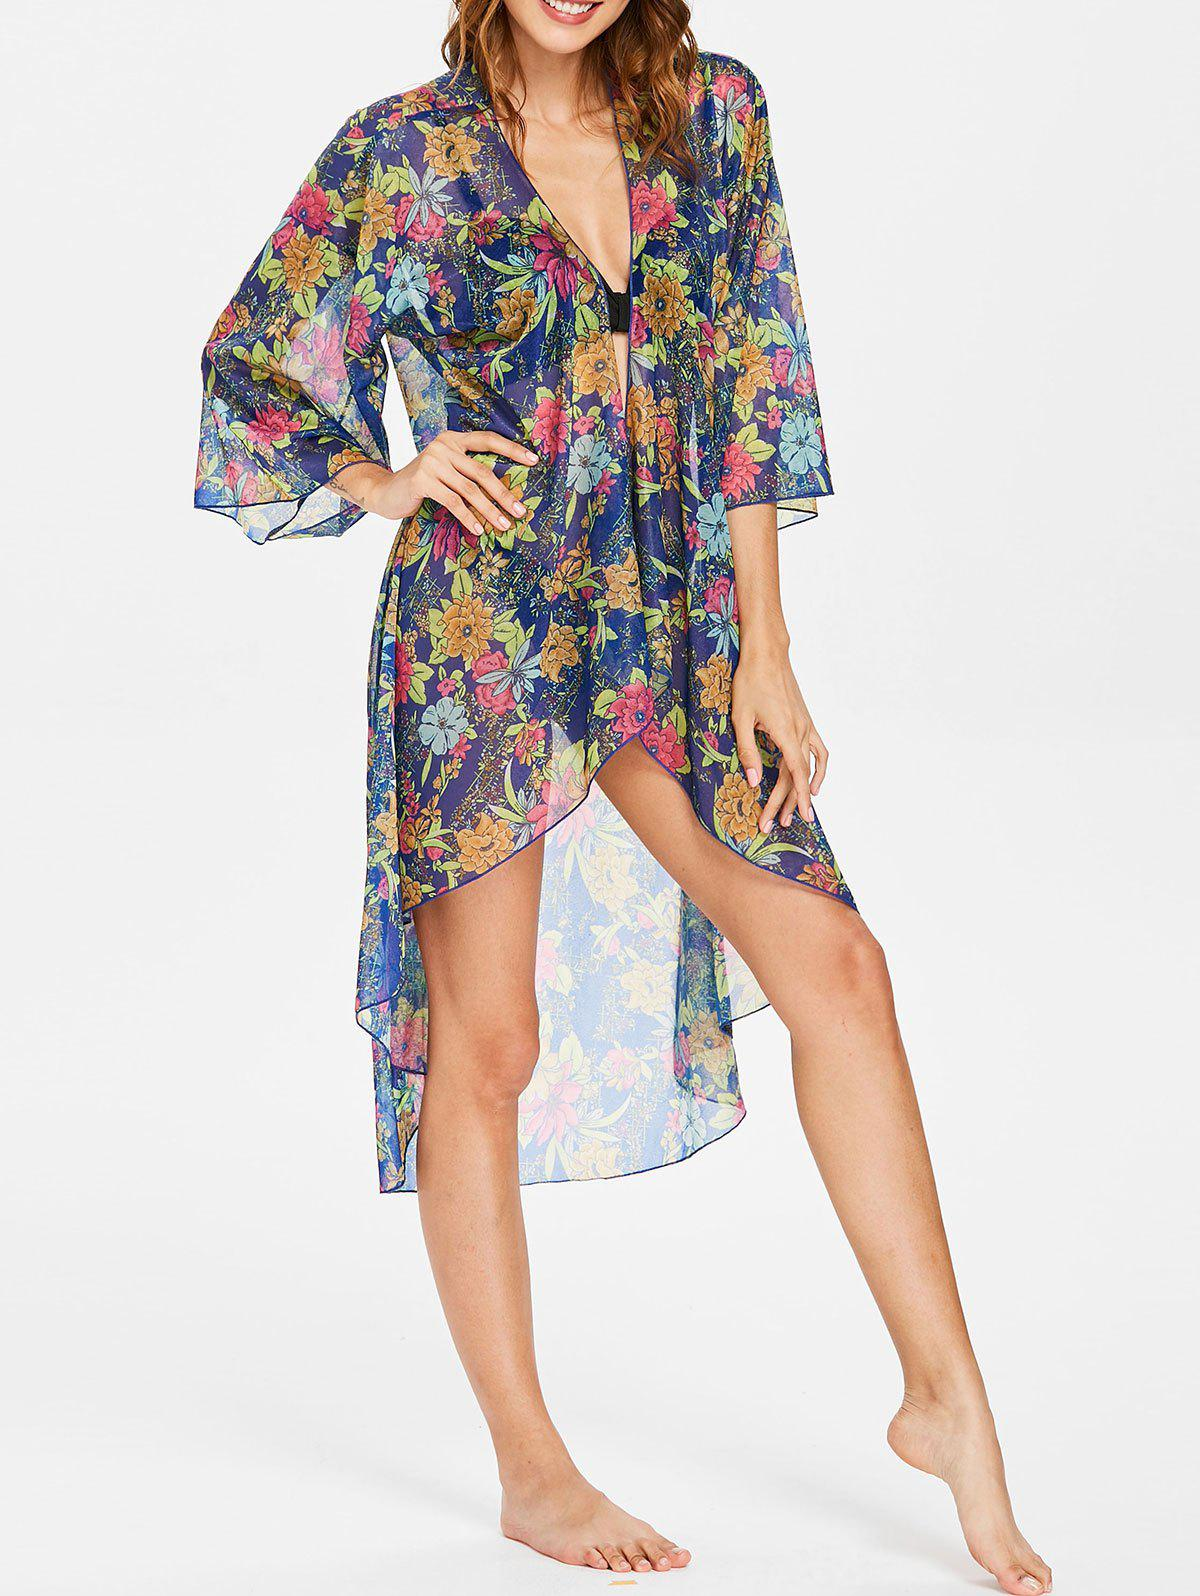 Flower Sheer High Low Cover Up - NAVY BLUE ONE SIZE